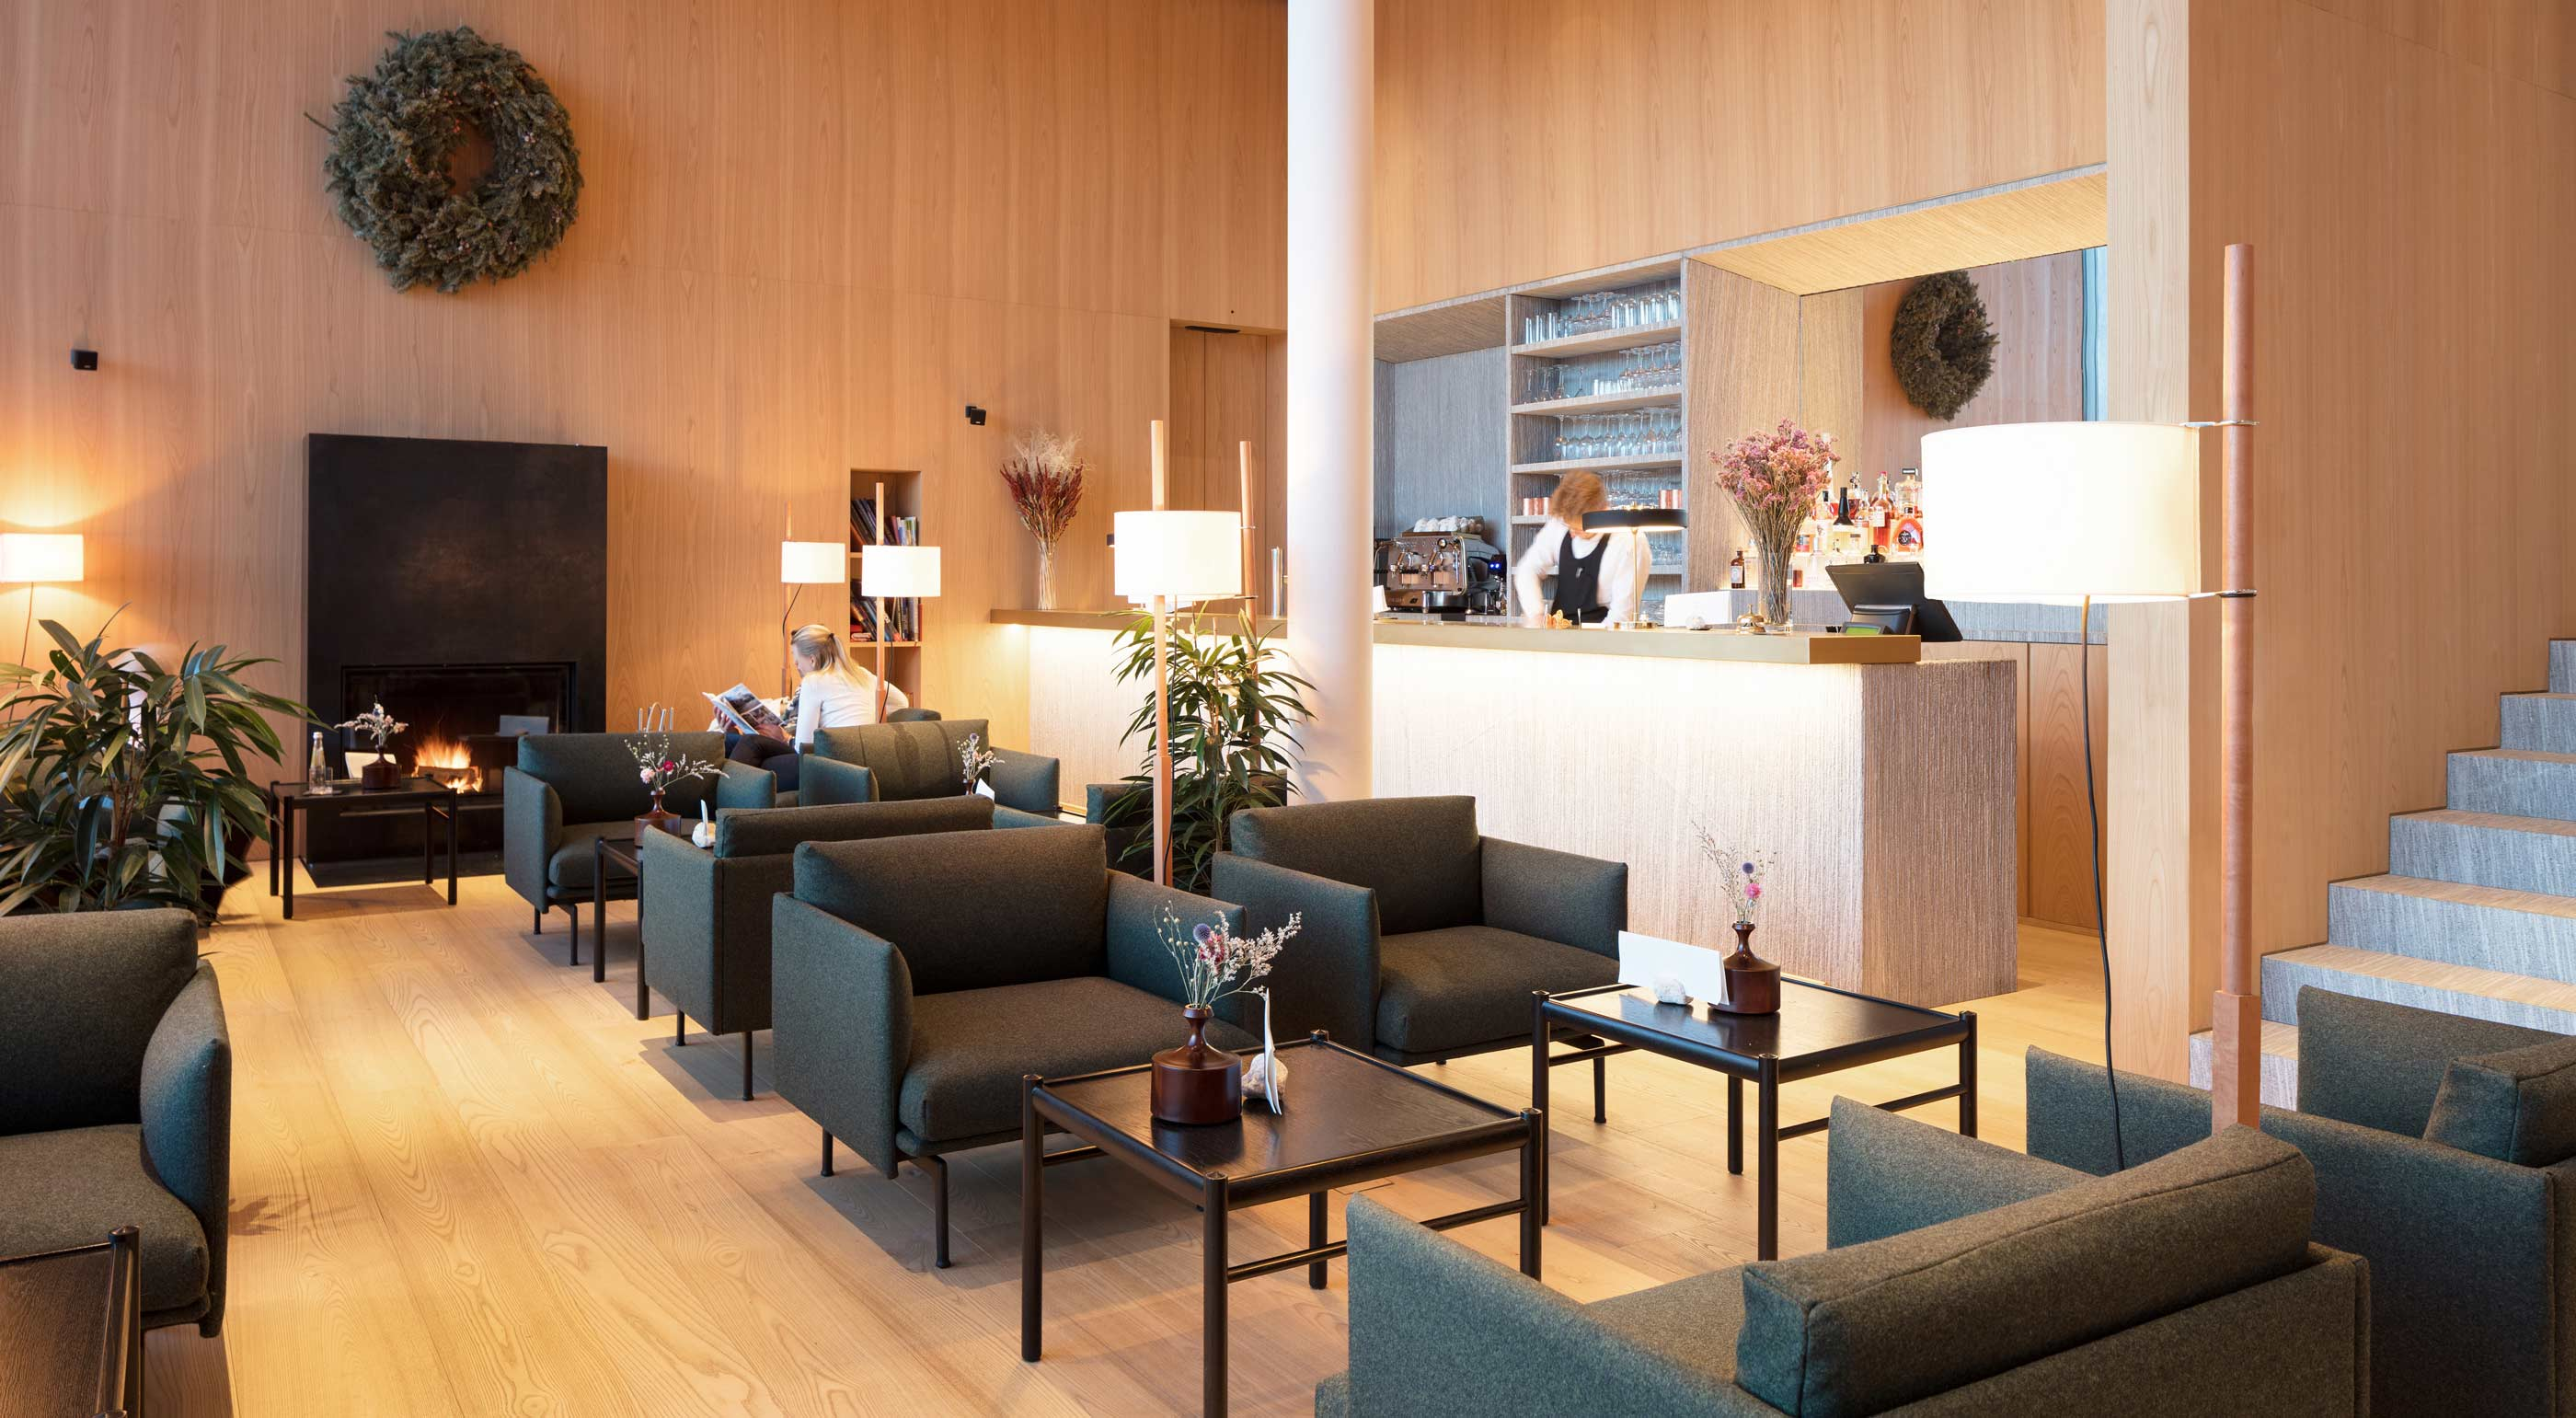 The Schgaguler Hotel Bar - the living room of the boutique hotel